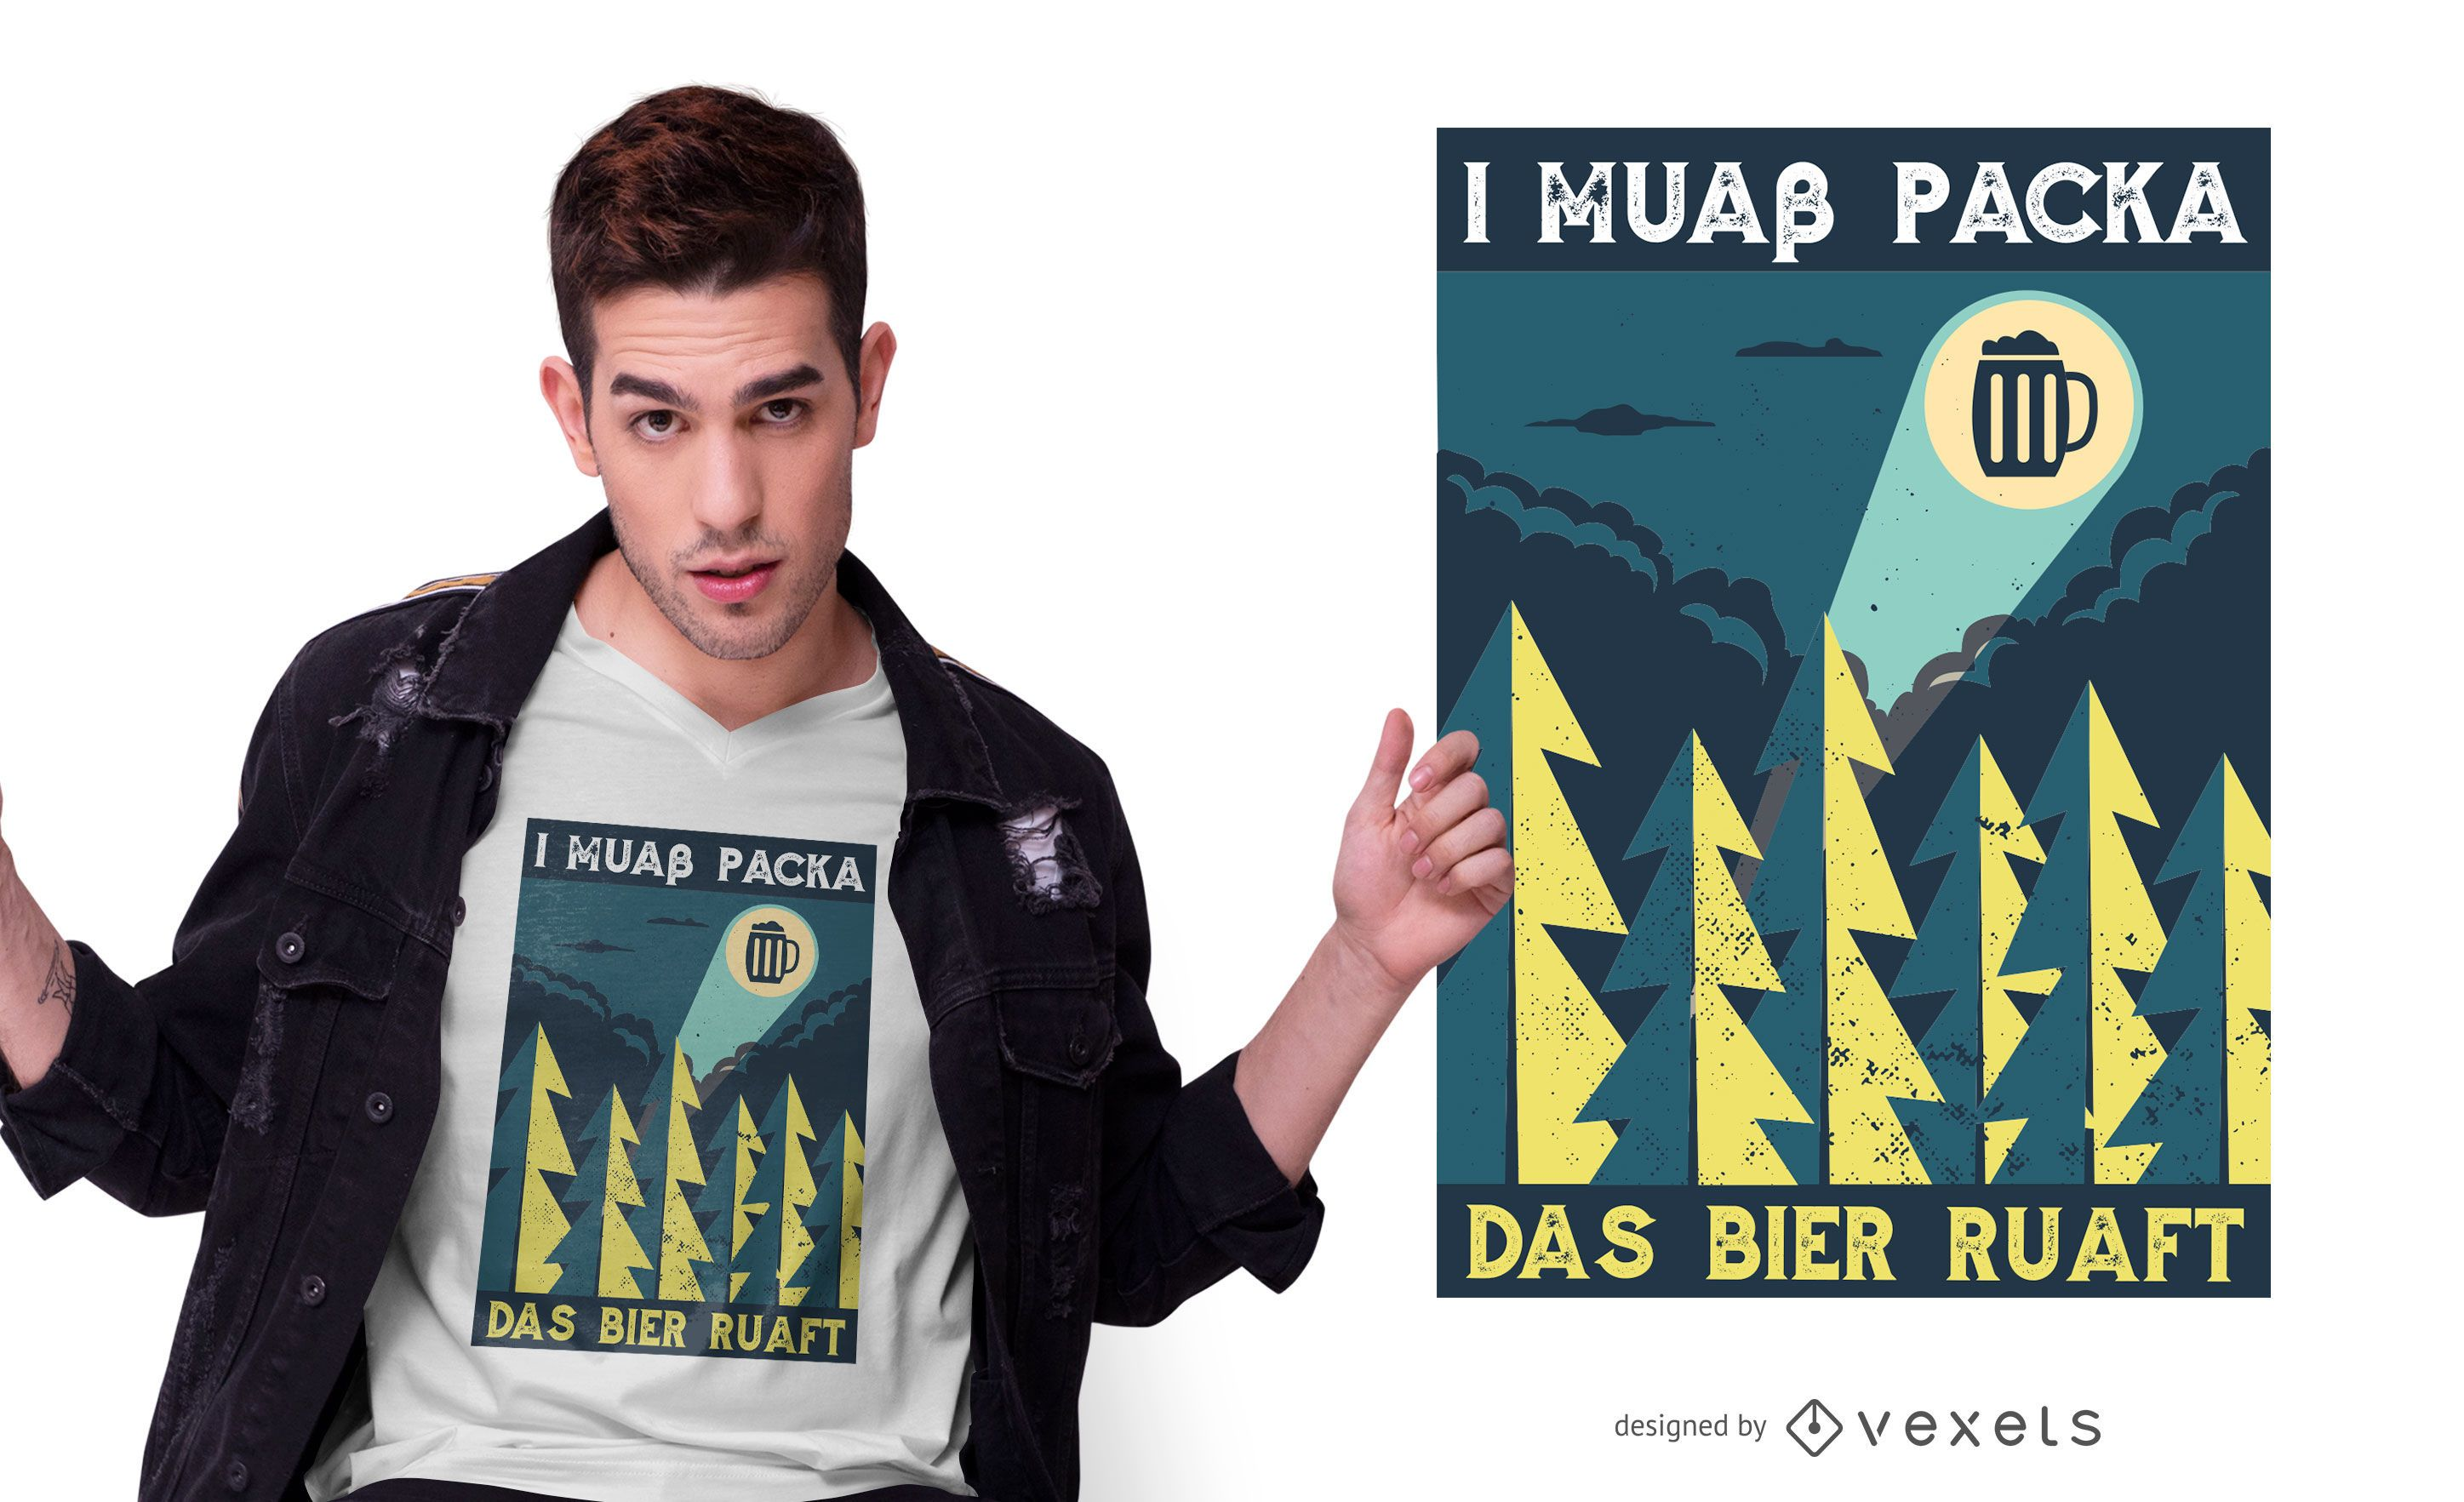 Bavarian Funny Beer Quote T-shirt Design